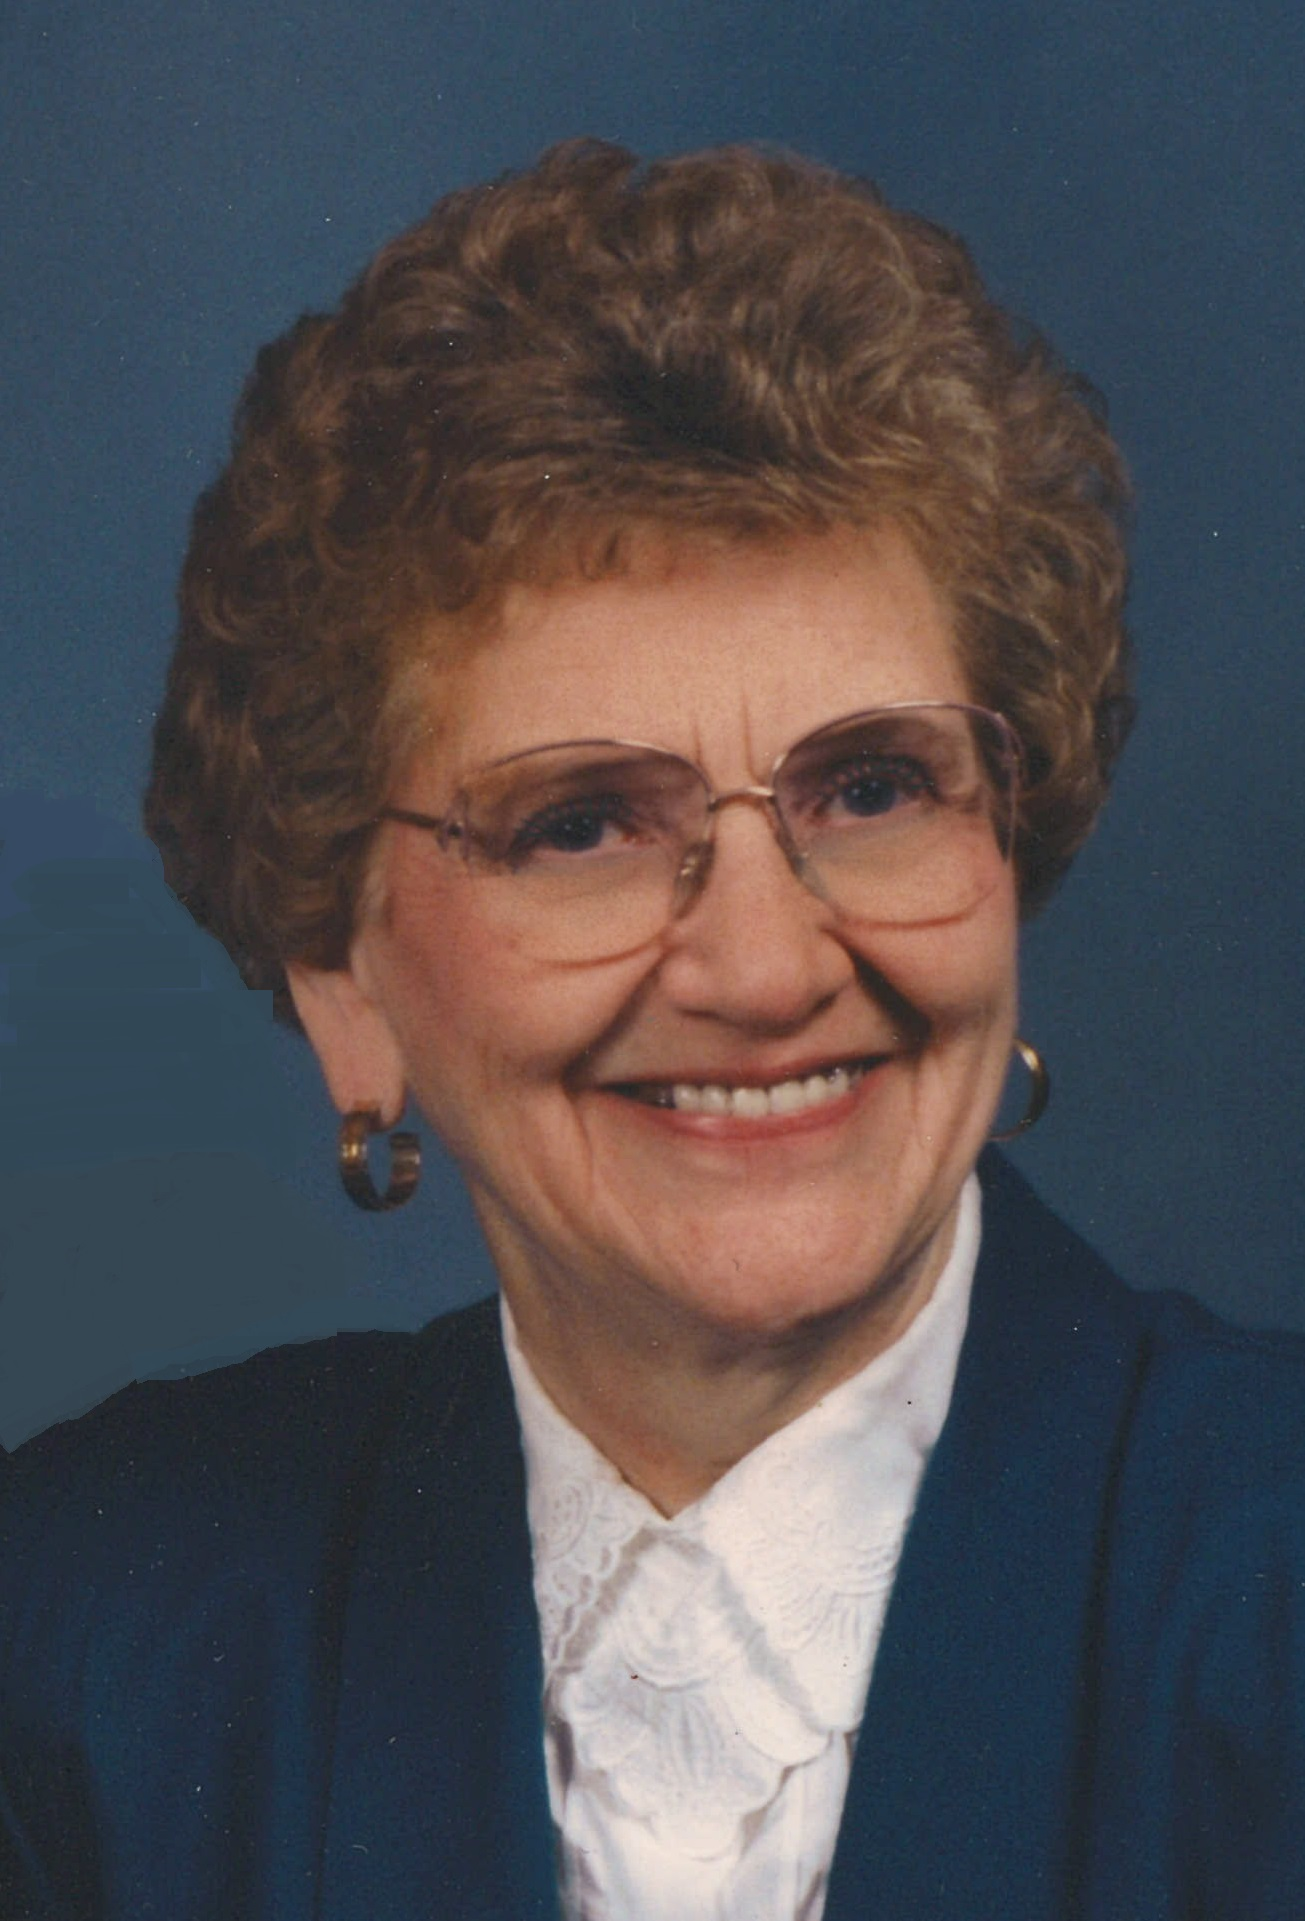 Justina Kroenke, age 98, formerly of Dodge, Nebraska